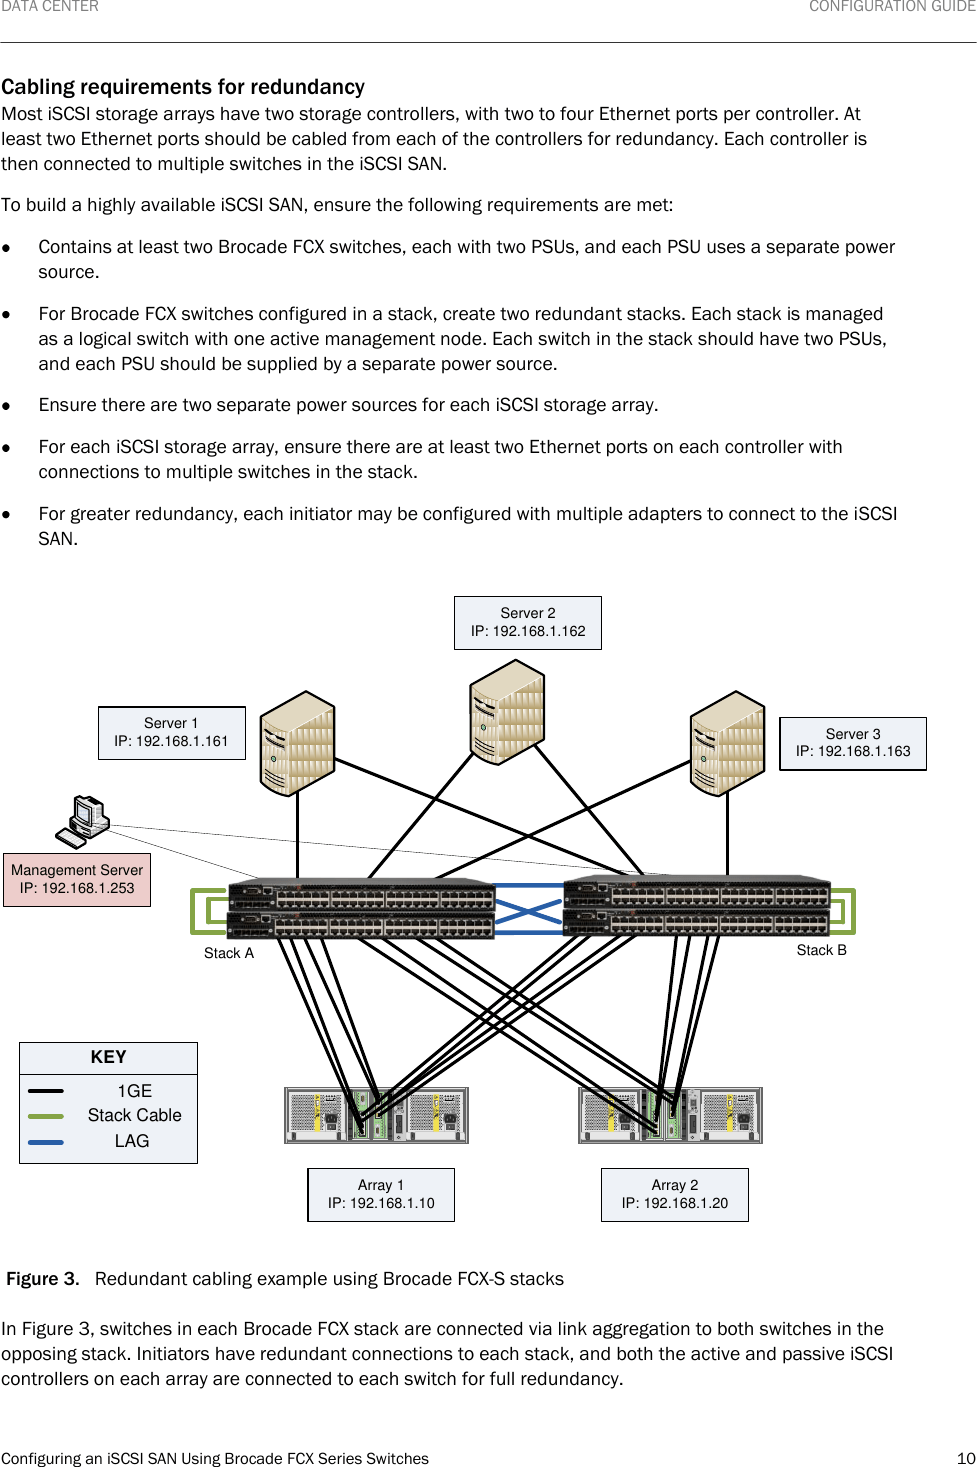 medium resolution of ruckus configuring an iscsi storage area network using brocade fcx series switches for equallogic environments i scsi equal logic scsiconfig guide ga cg 285